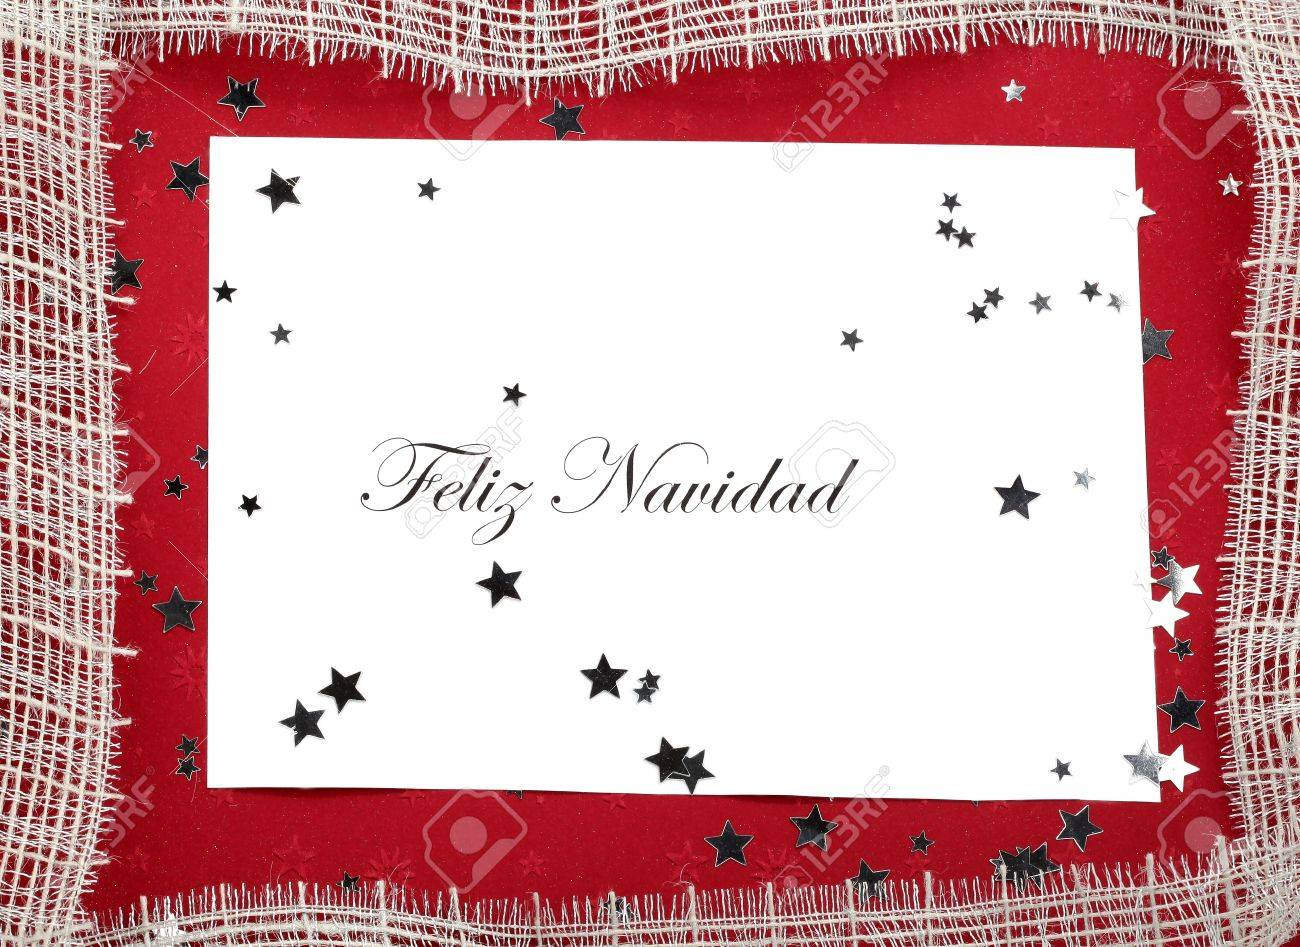 Spanish Christmas Card Stock Photo, Picture And Royalty Free Image ...